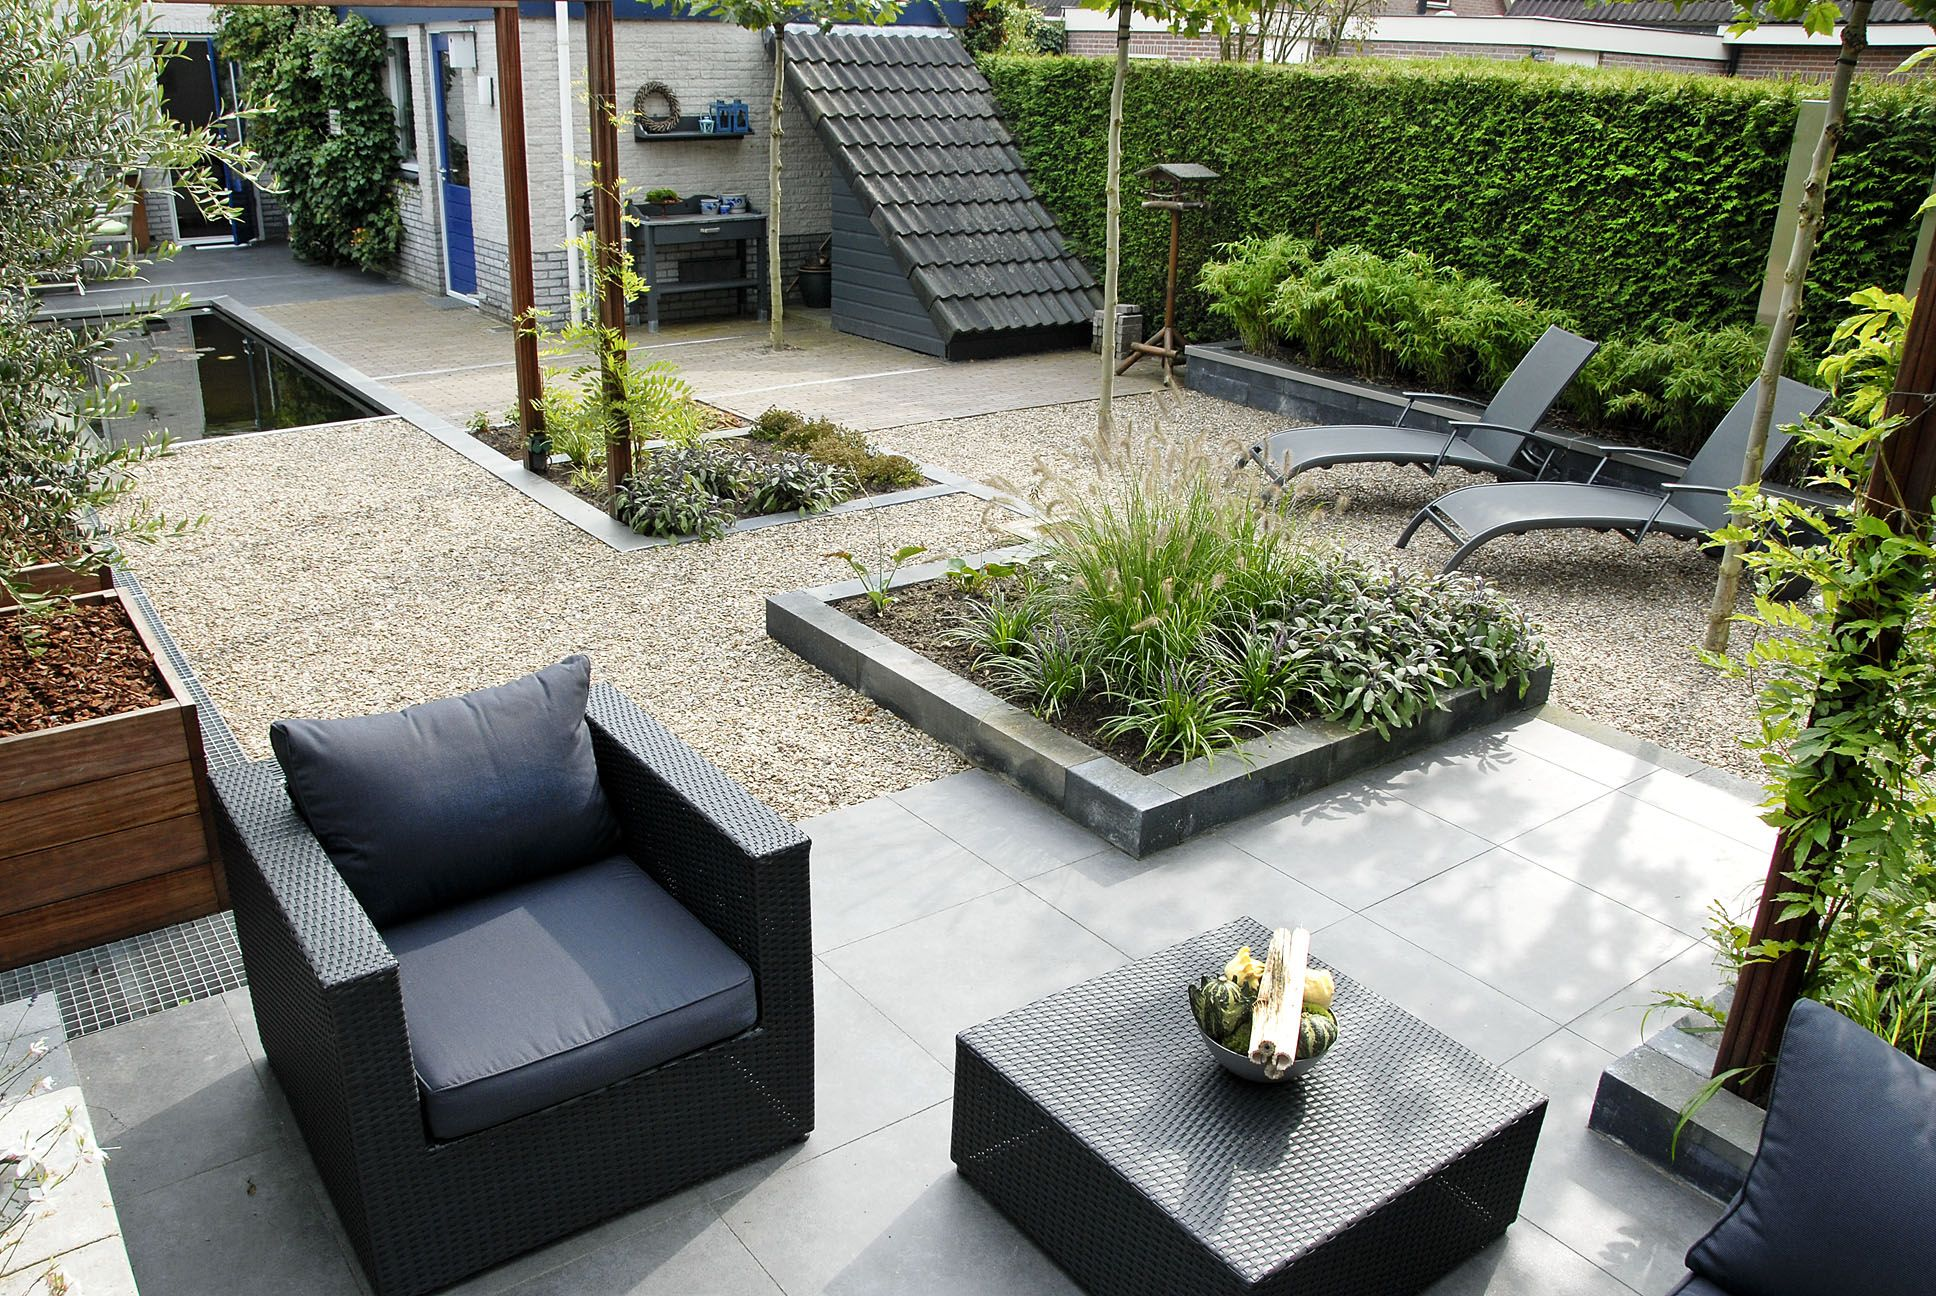 Green art lounge terras moderne vormgeving tuin garden pinterest moderne tuin lounges - Moderne woning buiten lay outs ...